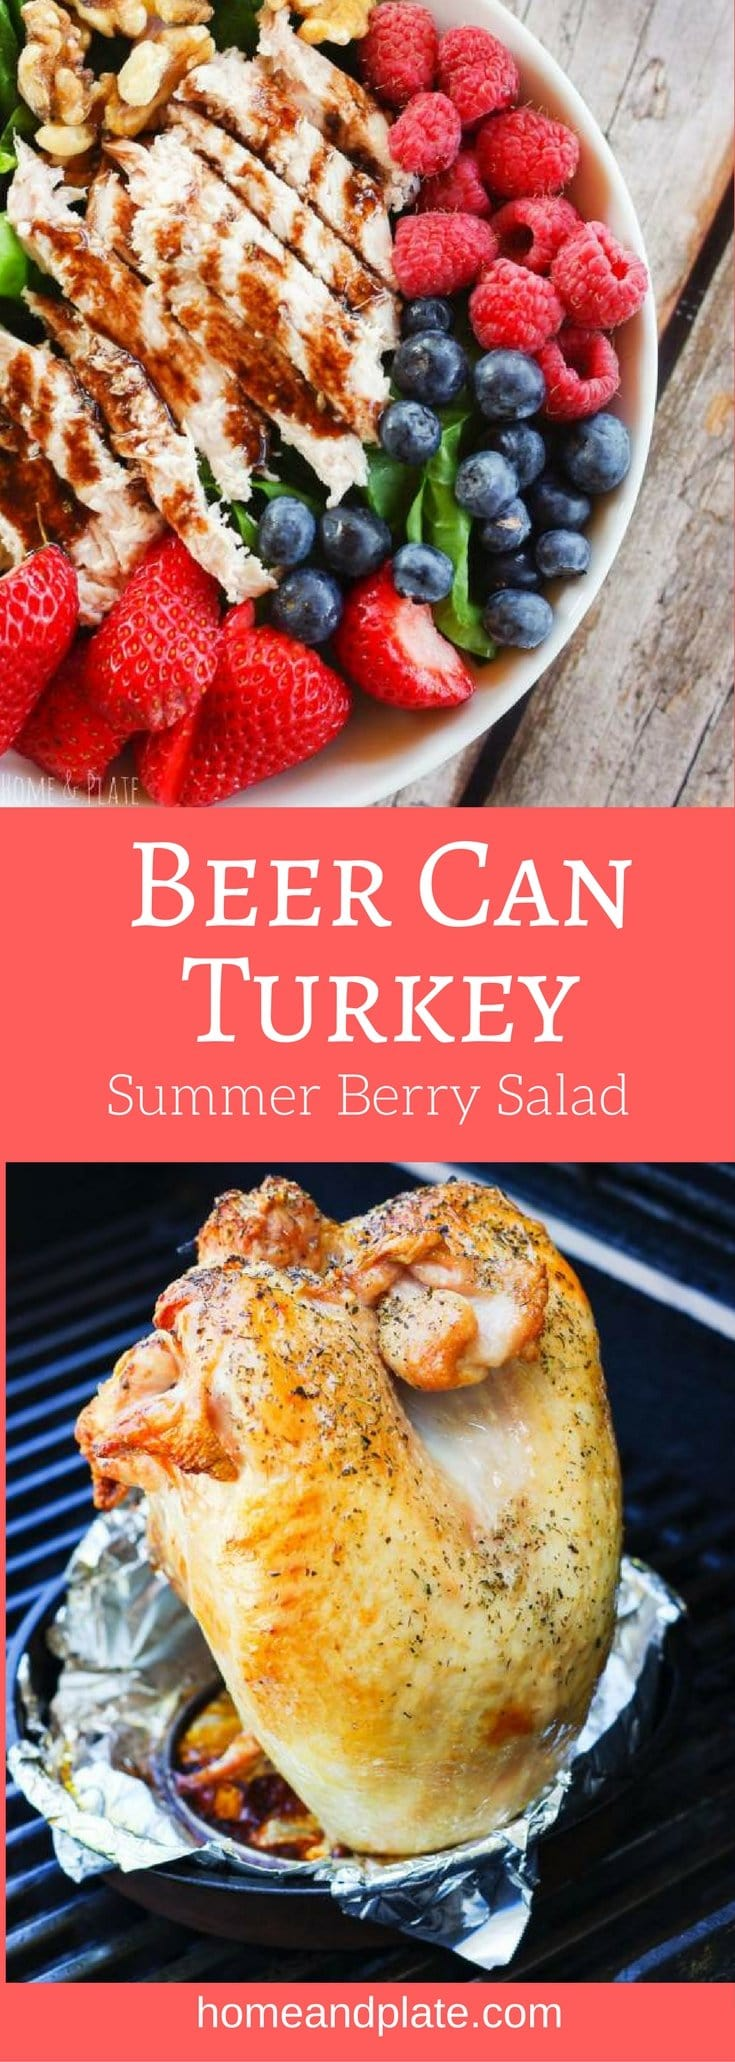 #Ad | Beer Can Turkey Summer Berry Salad | www.homeandplate.com | Fresh sweet summer berries are paired with succulent grilled turkey and served with a drizzle of blackberry balsamic vinaigrette. There